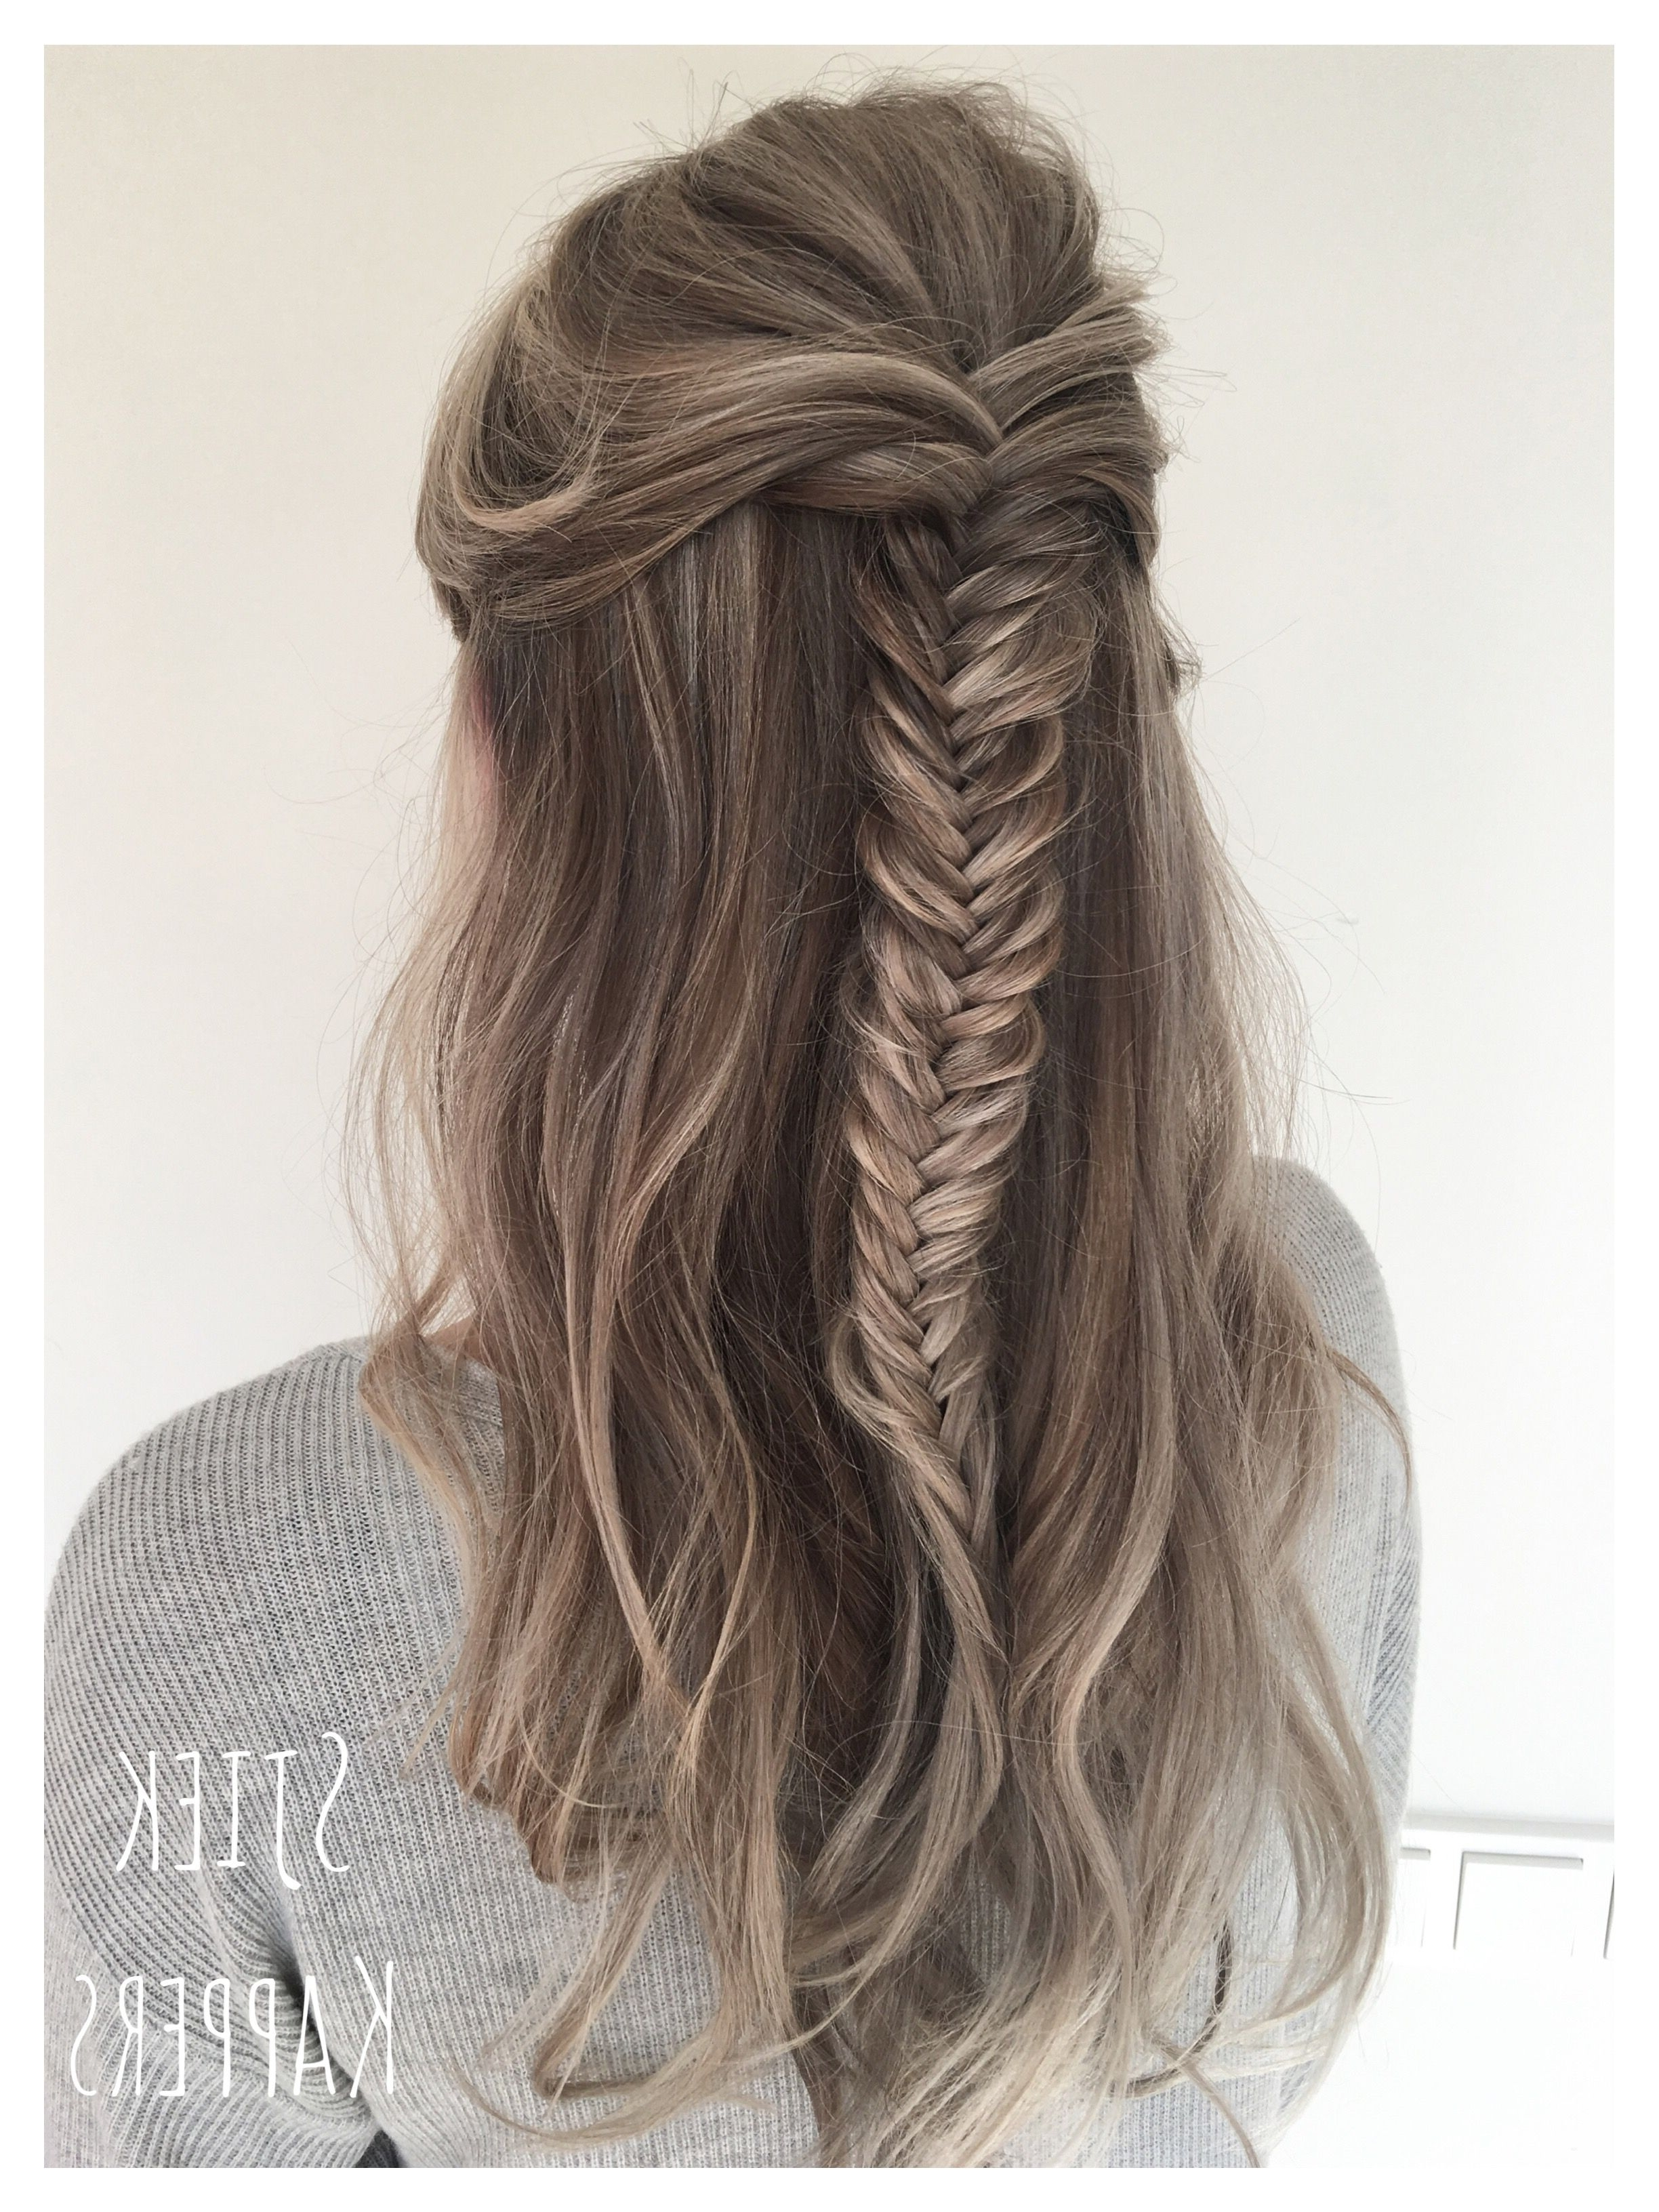 Ashy Blonde, Braid Hair And In 2017 Honey Blonde Fishtail Look Ponytail Hairstyles (View 3 of 20)